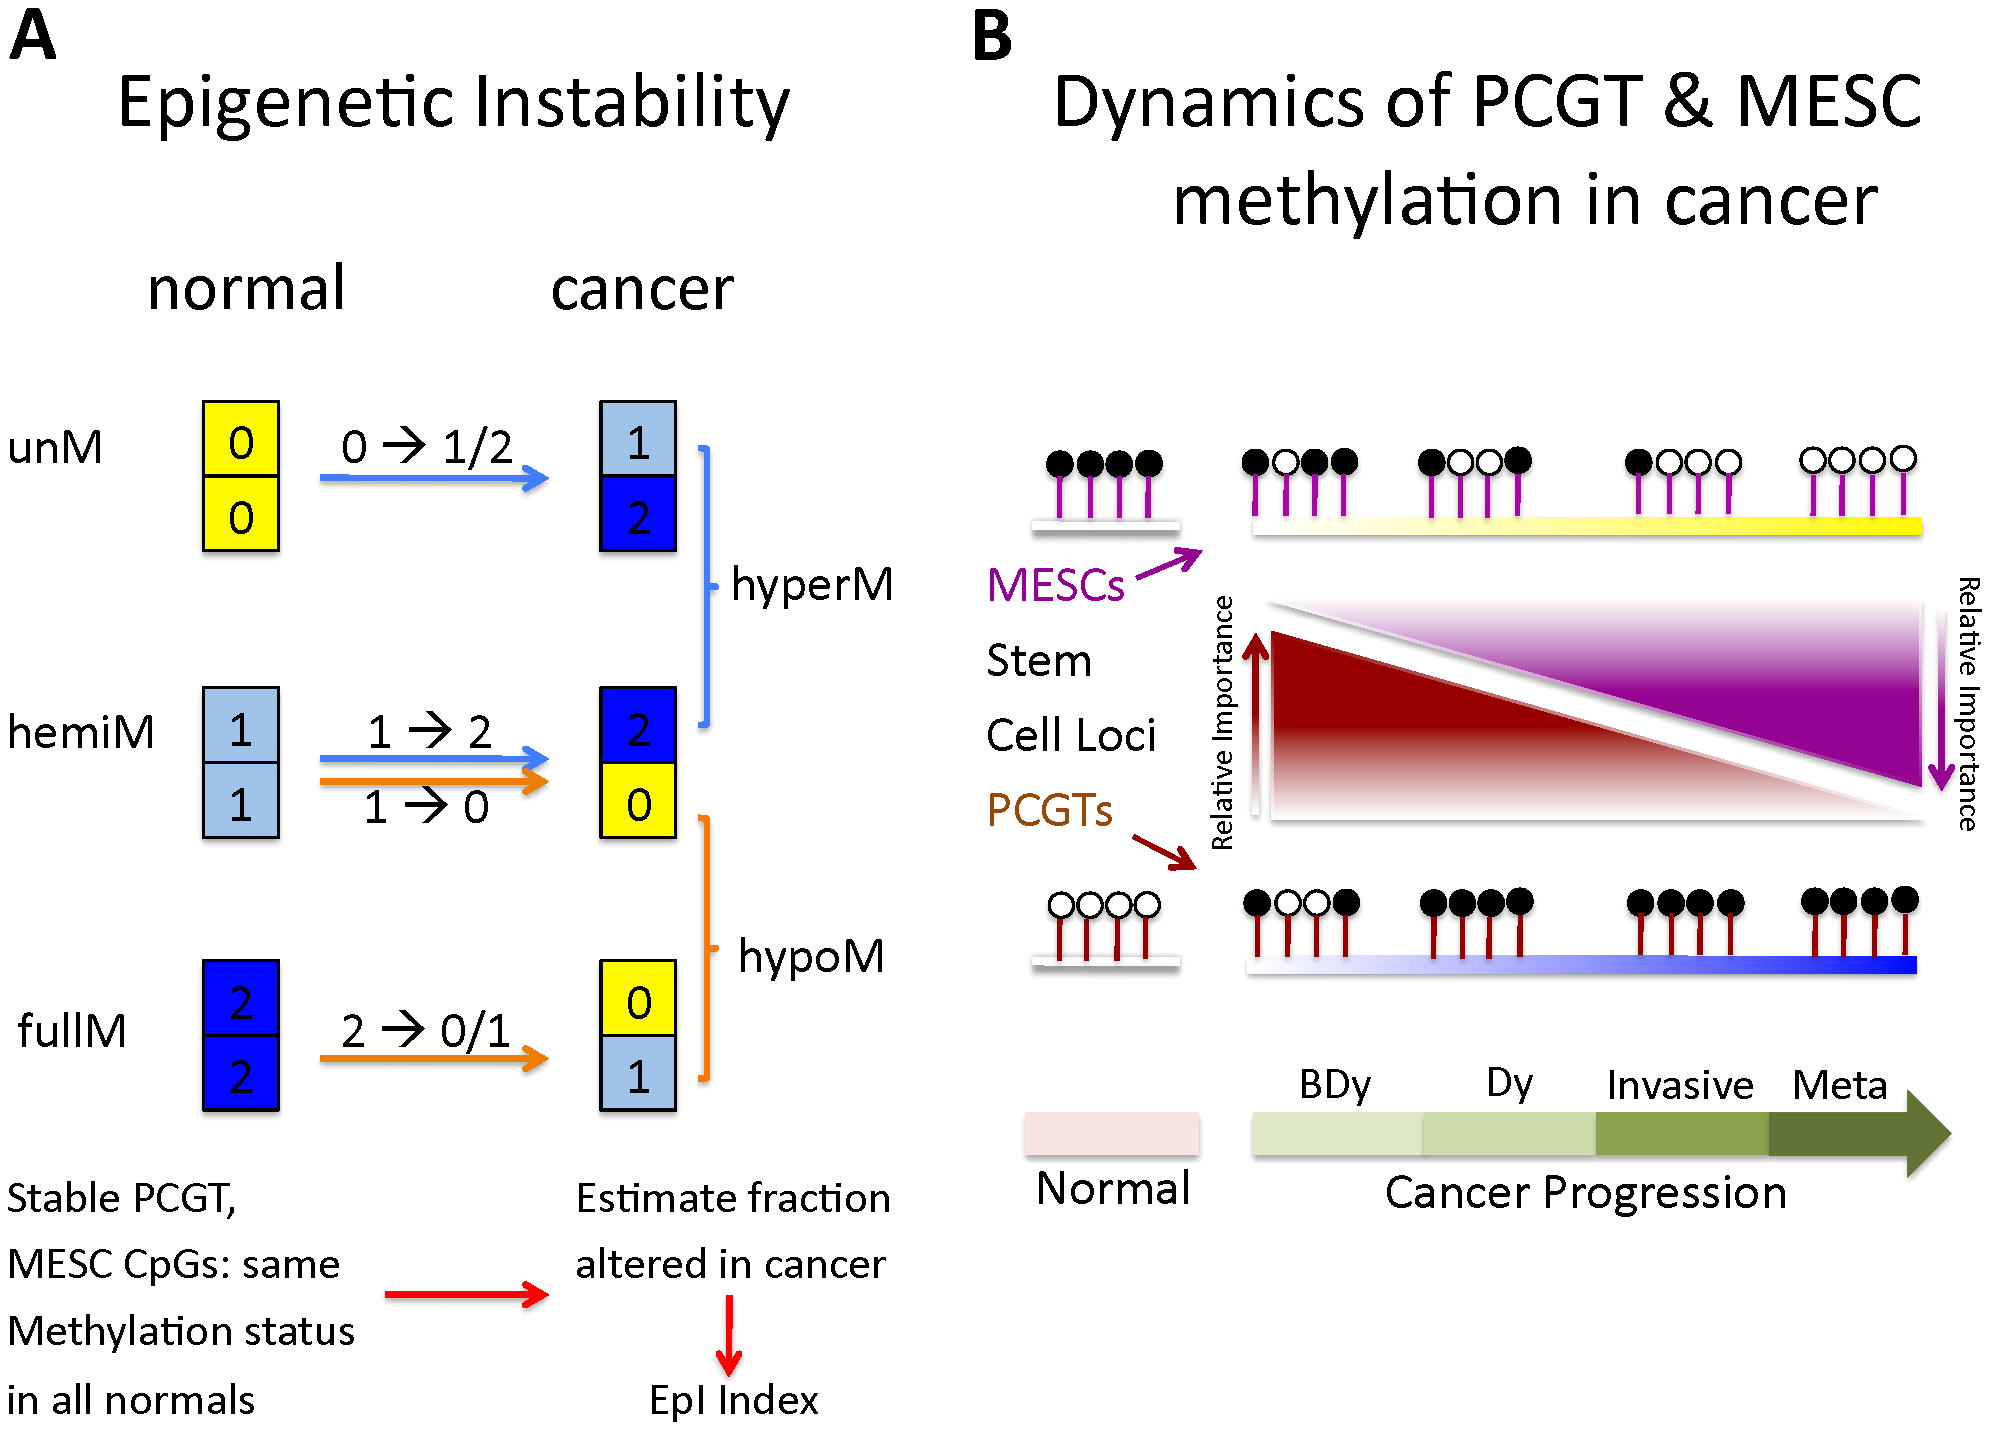 Definition of epigenetic instability indices and dynamics of PCGT and MESC methylation in cancer.